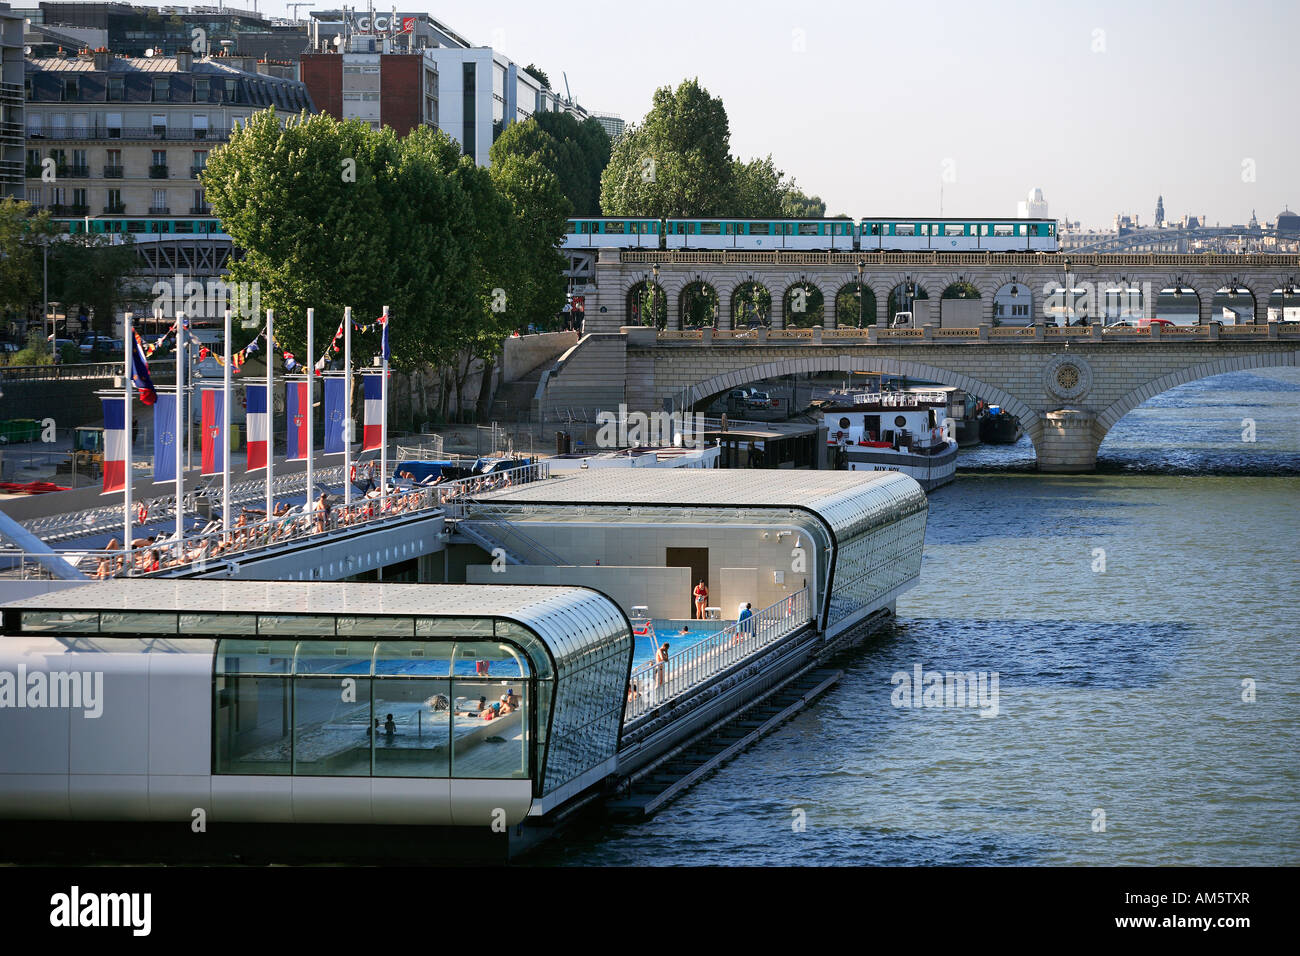 France paris josephine baker swimming pool across from for Josephine baker swimming pool paris